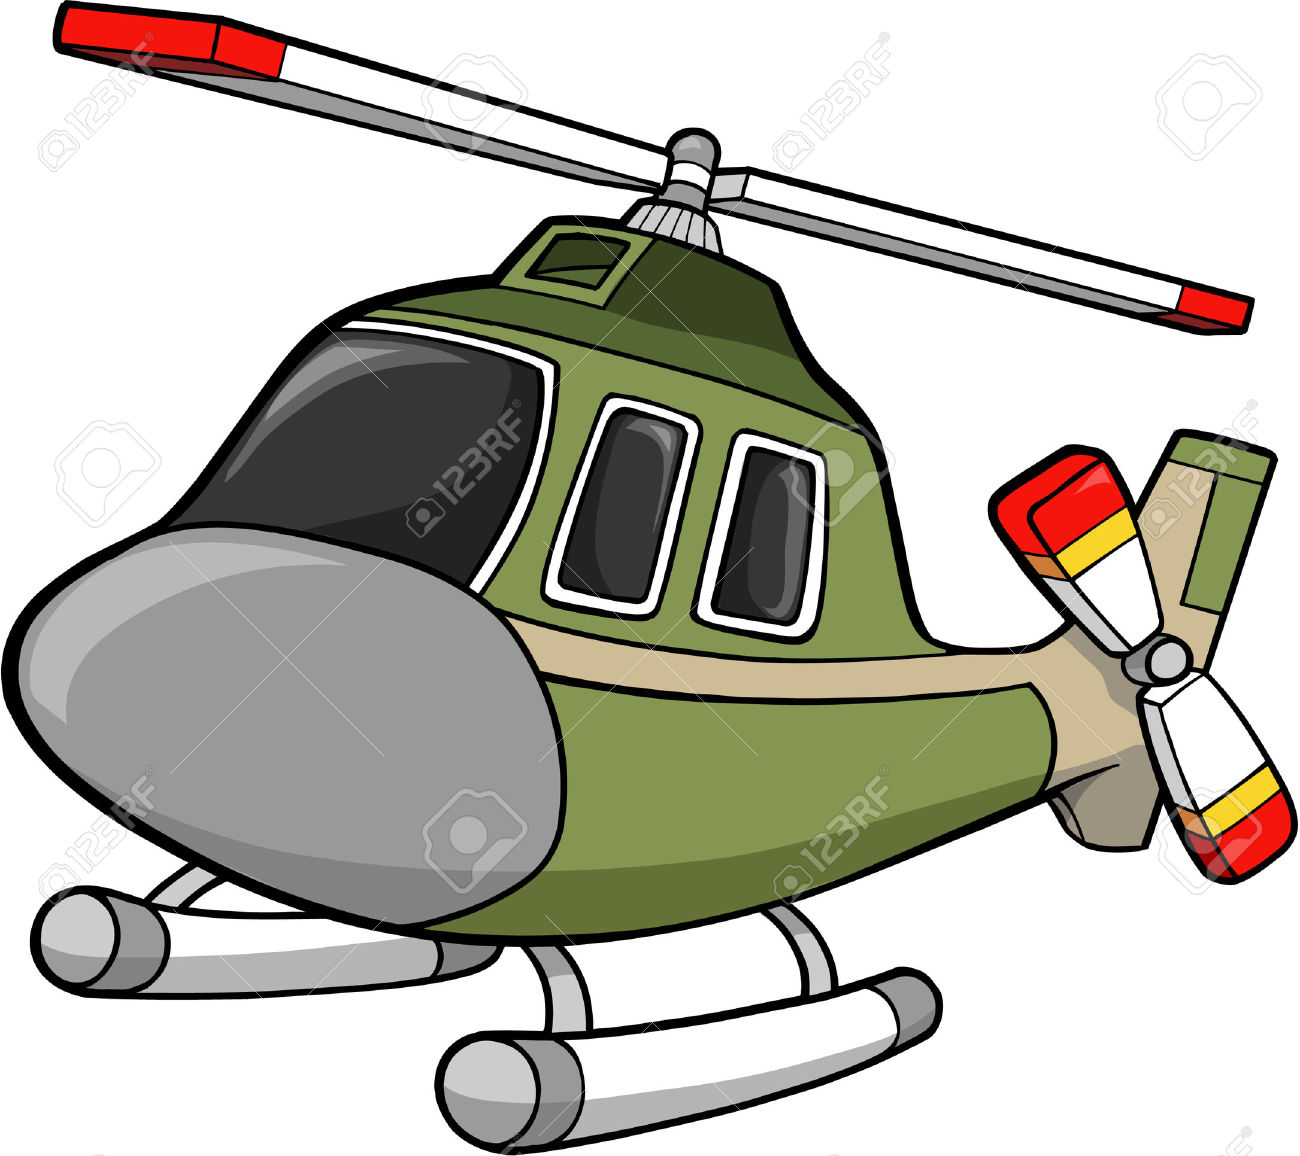 helicopter clipart free download best helicopter clipart